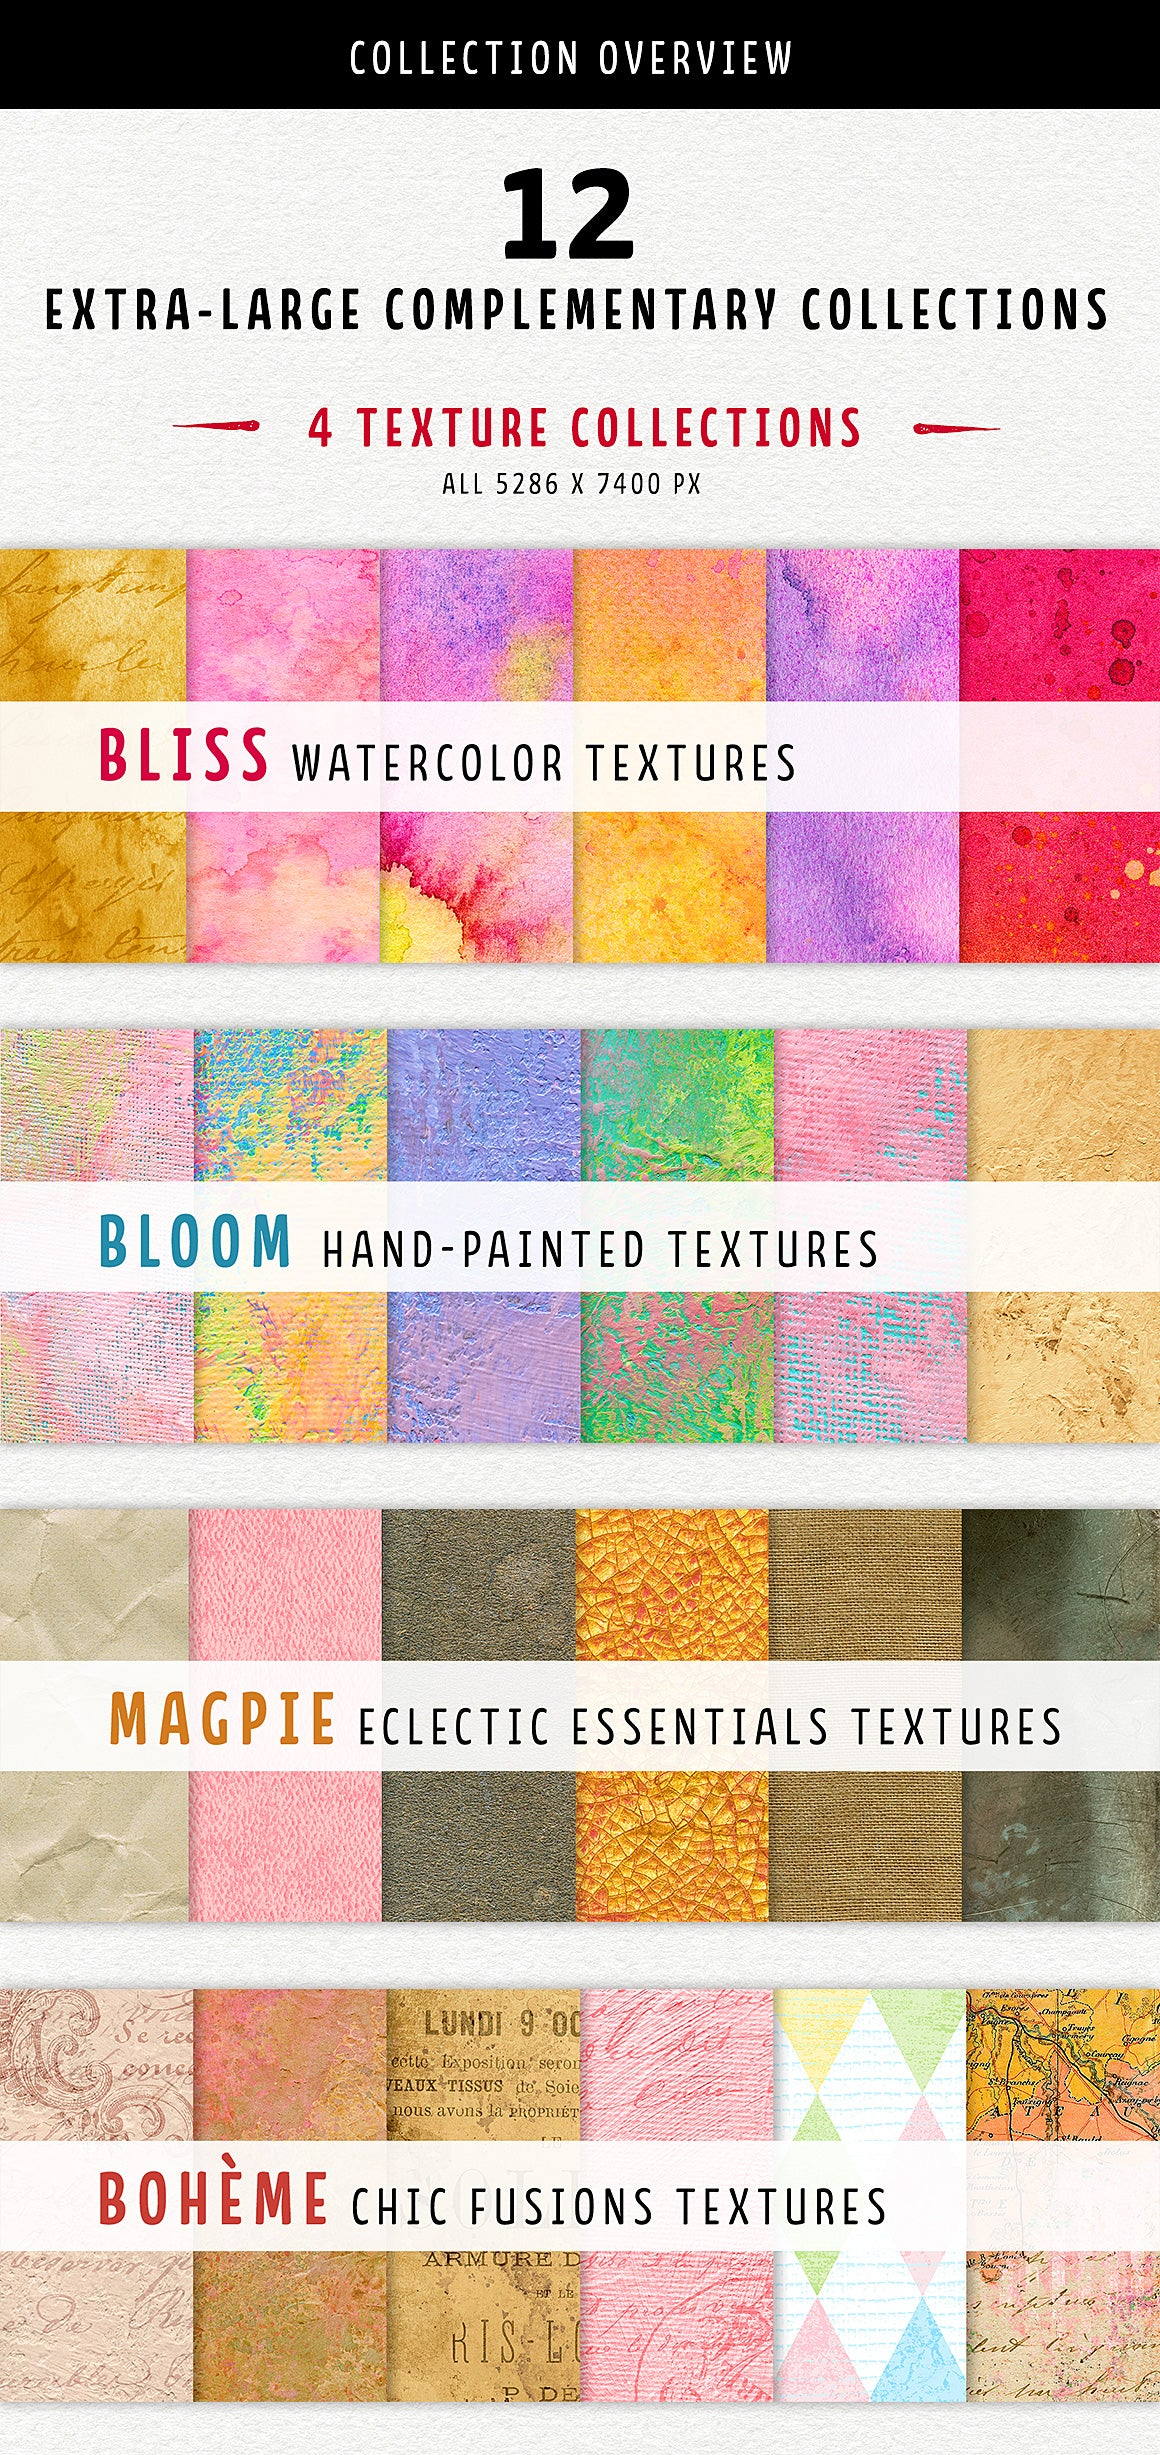 4 unique texture collections in the Complete Inspirational Texture and Elements Collection.